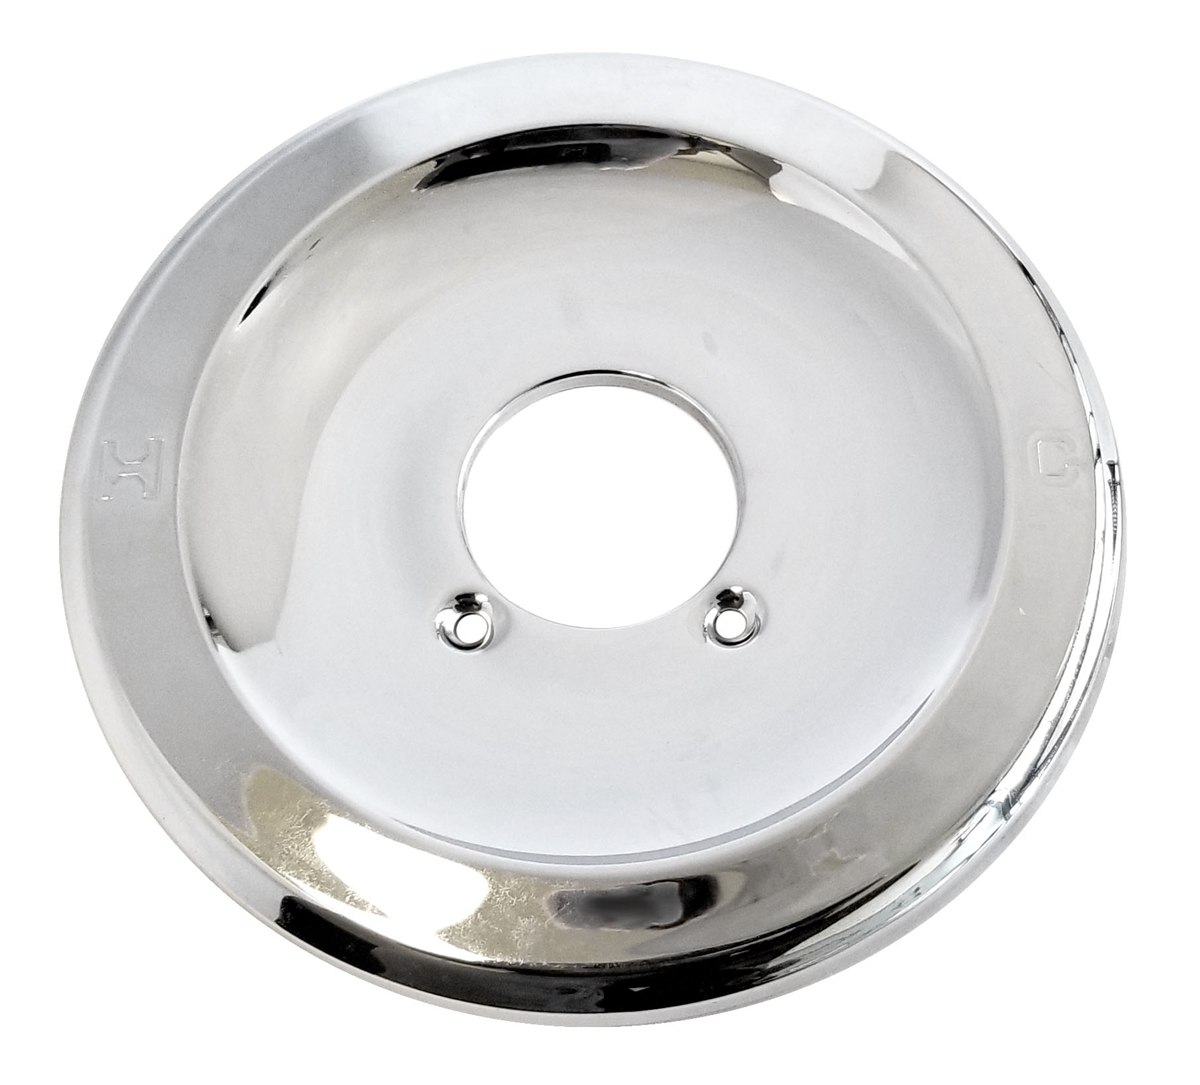 Pfister Tub And Shower Escutcheon Plate Polished Chrome